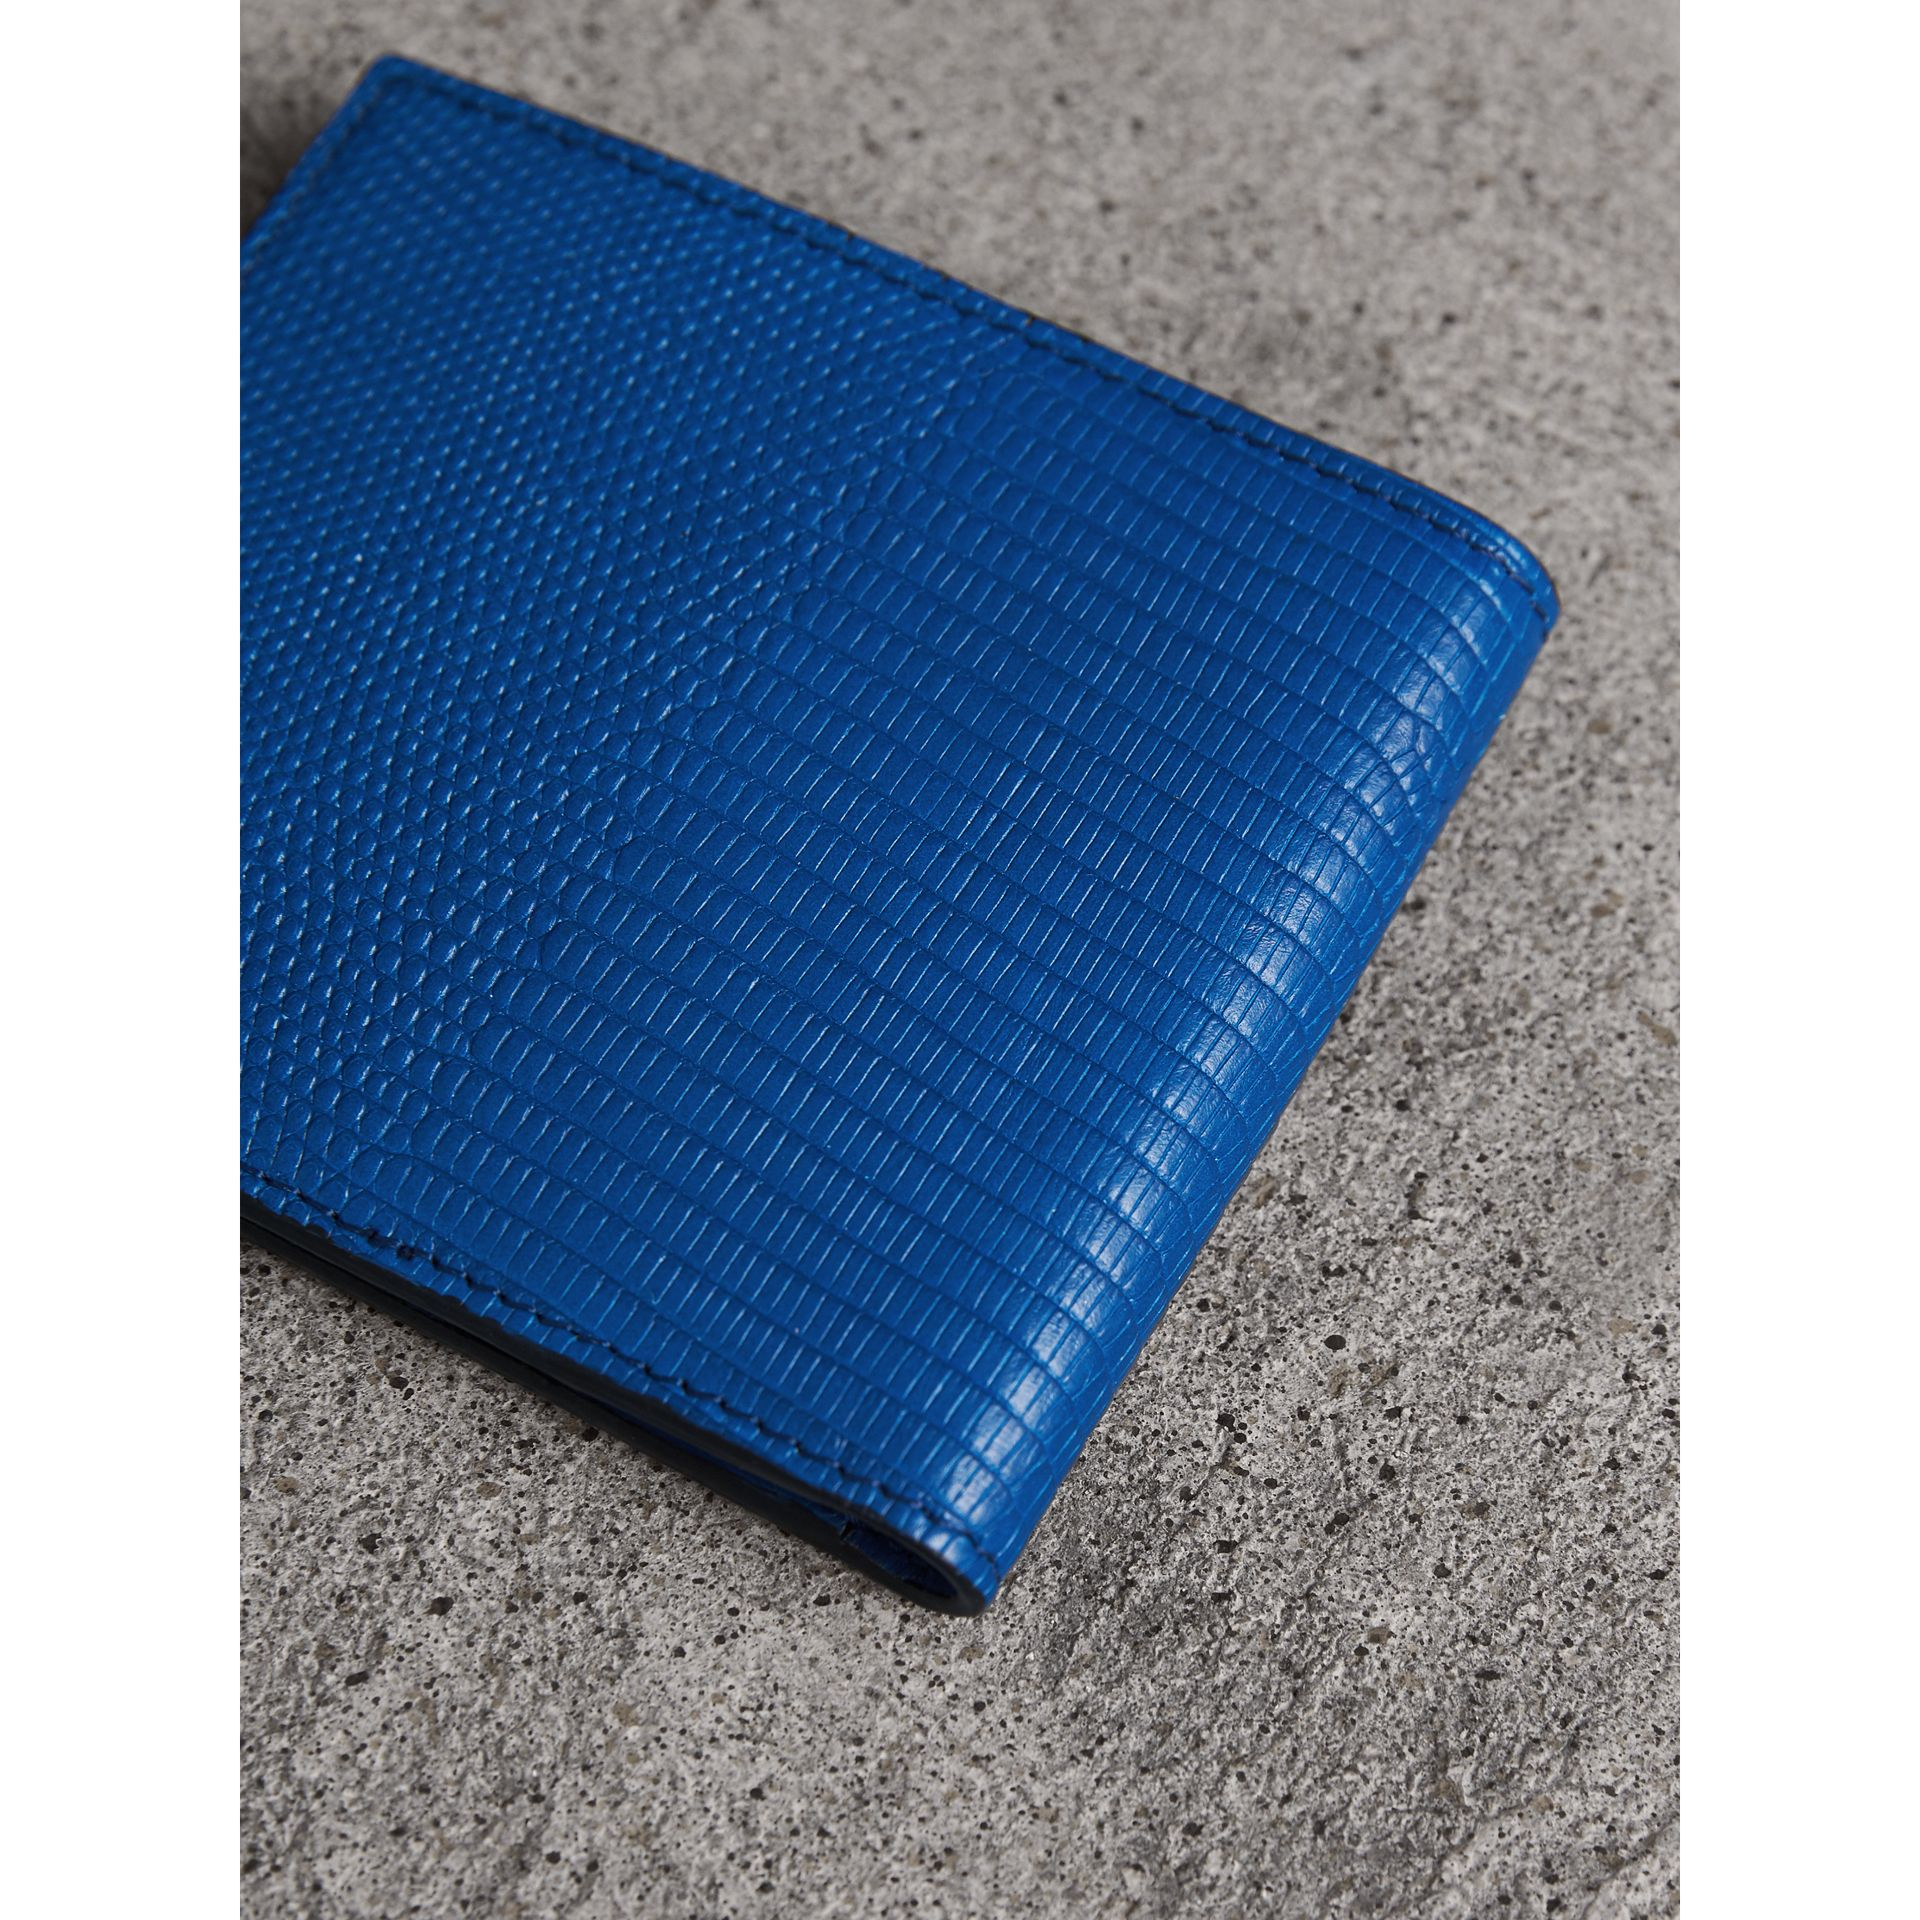 Lizard International Bifold Wallet in Sapphire Blue - Men | Burberry Canada - gallery image 1